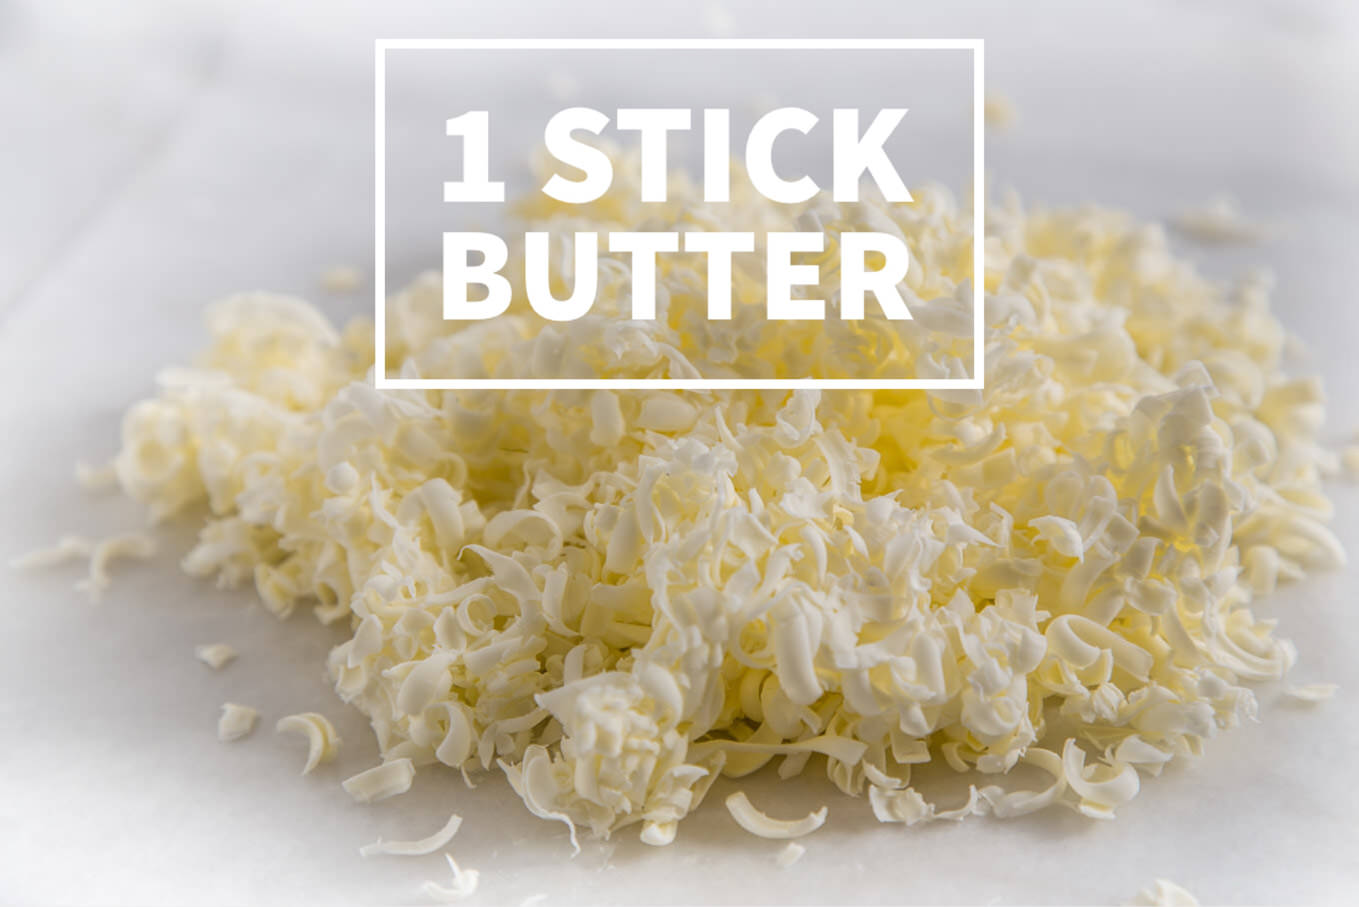 Biscuits 101 on SouthernFATTY.com - Butter